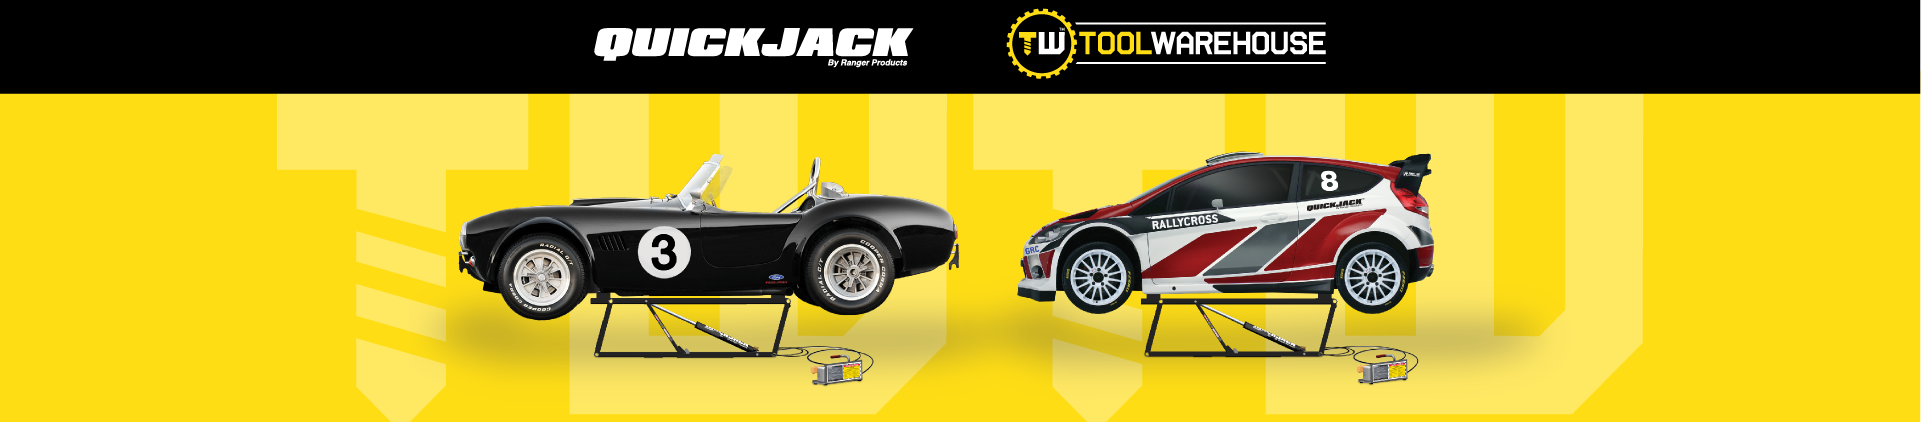 Quick Jack Toolwarehouse